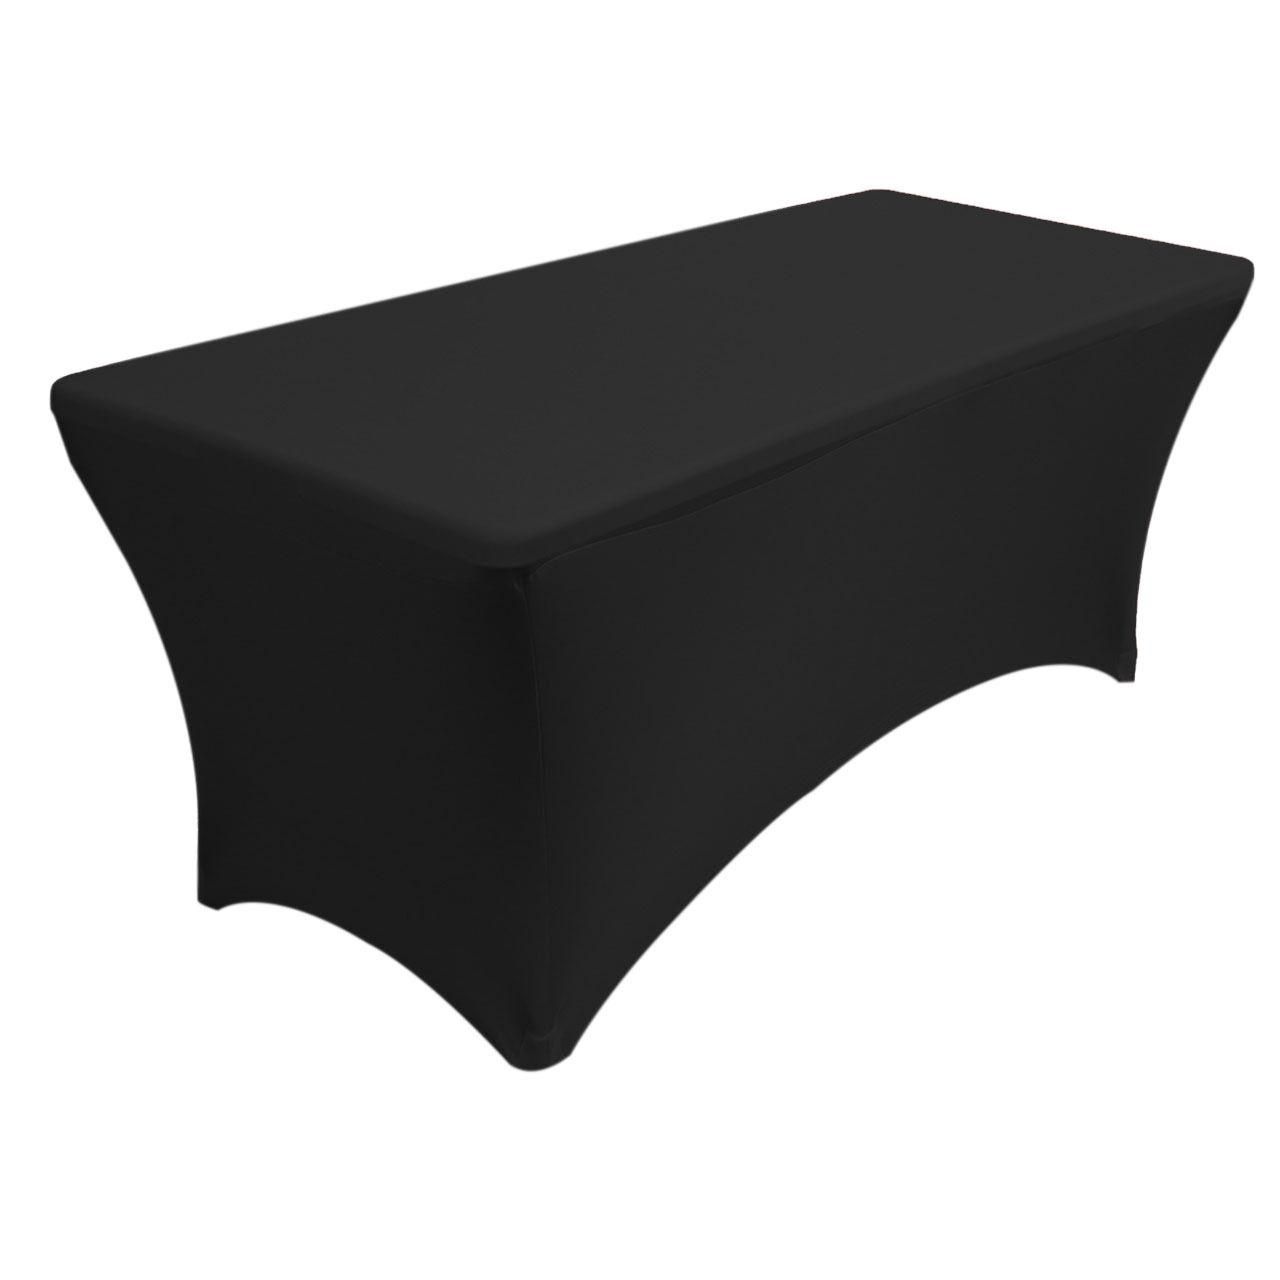 YourChairCovers 6 ft. Rectangular Stretch Tablecloth Black